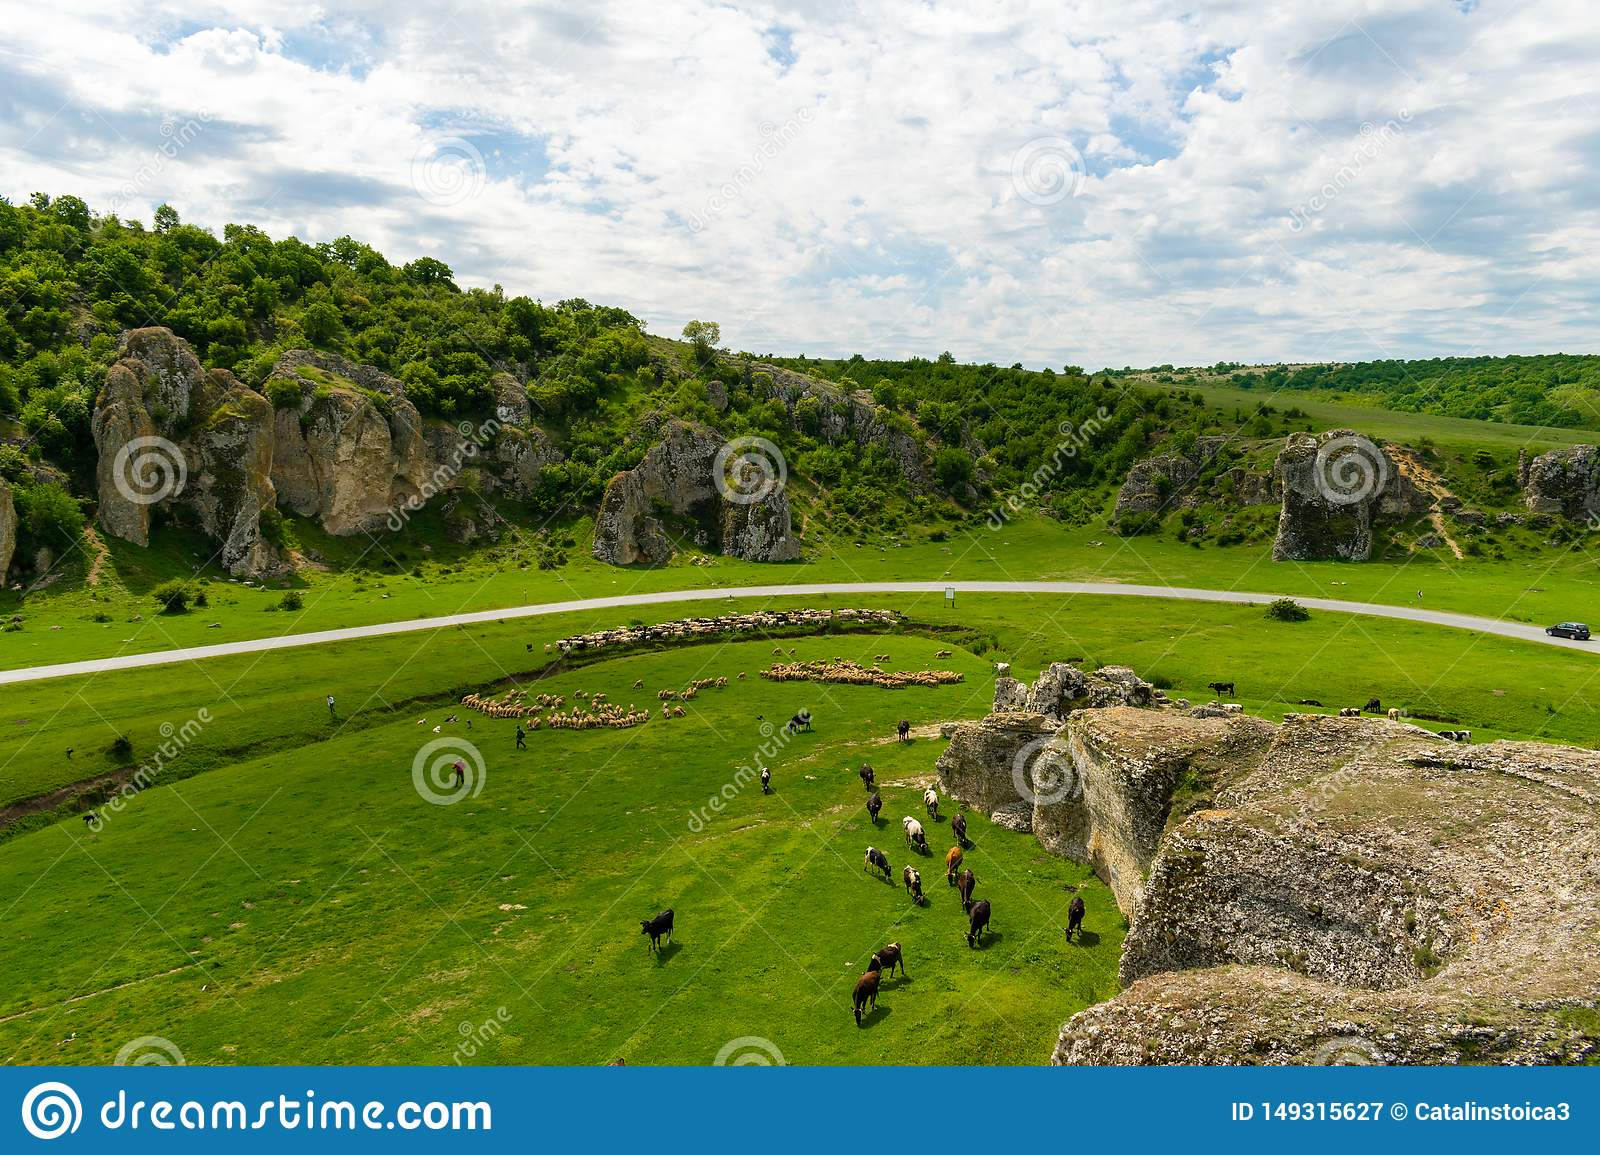 Cow and goats grazing in Dobrogea Gorges area, Romania